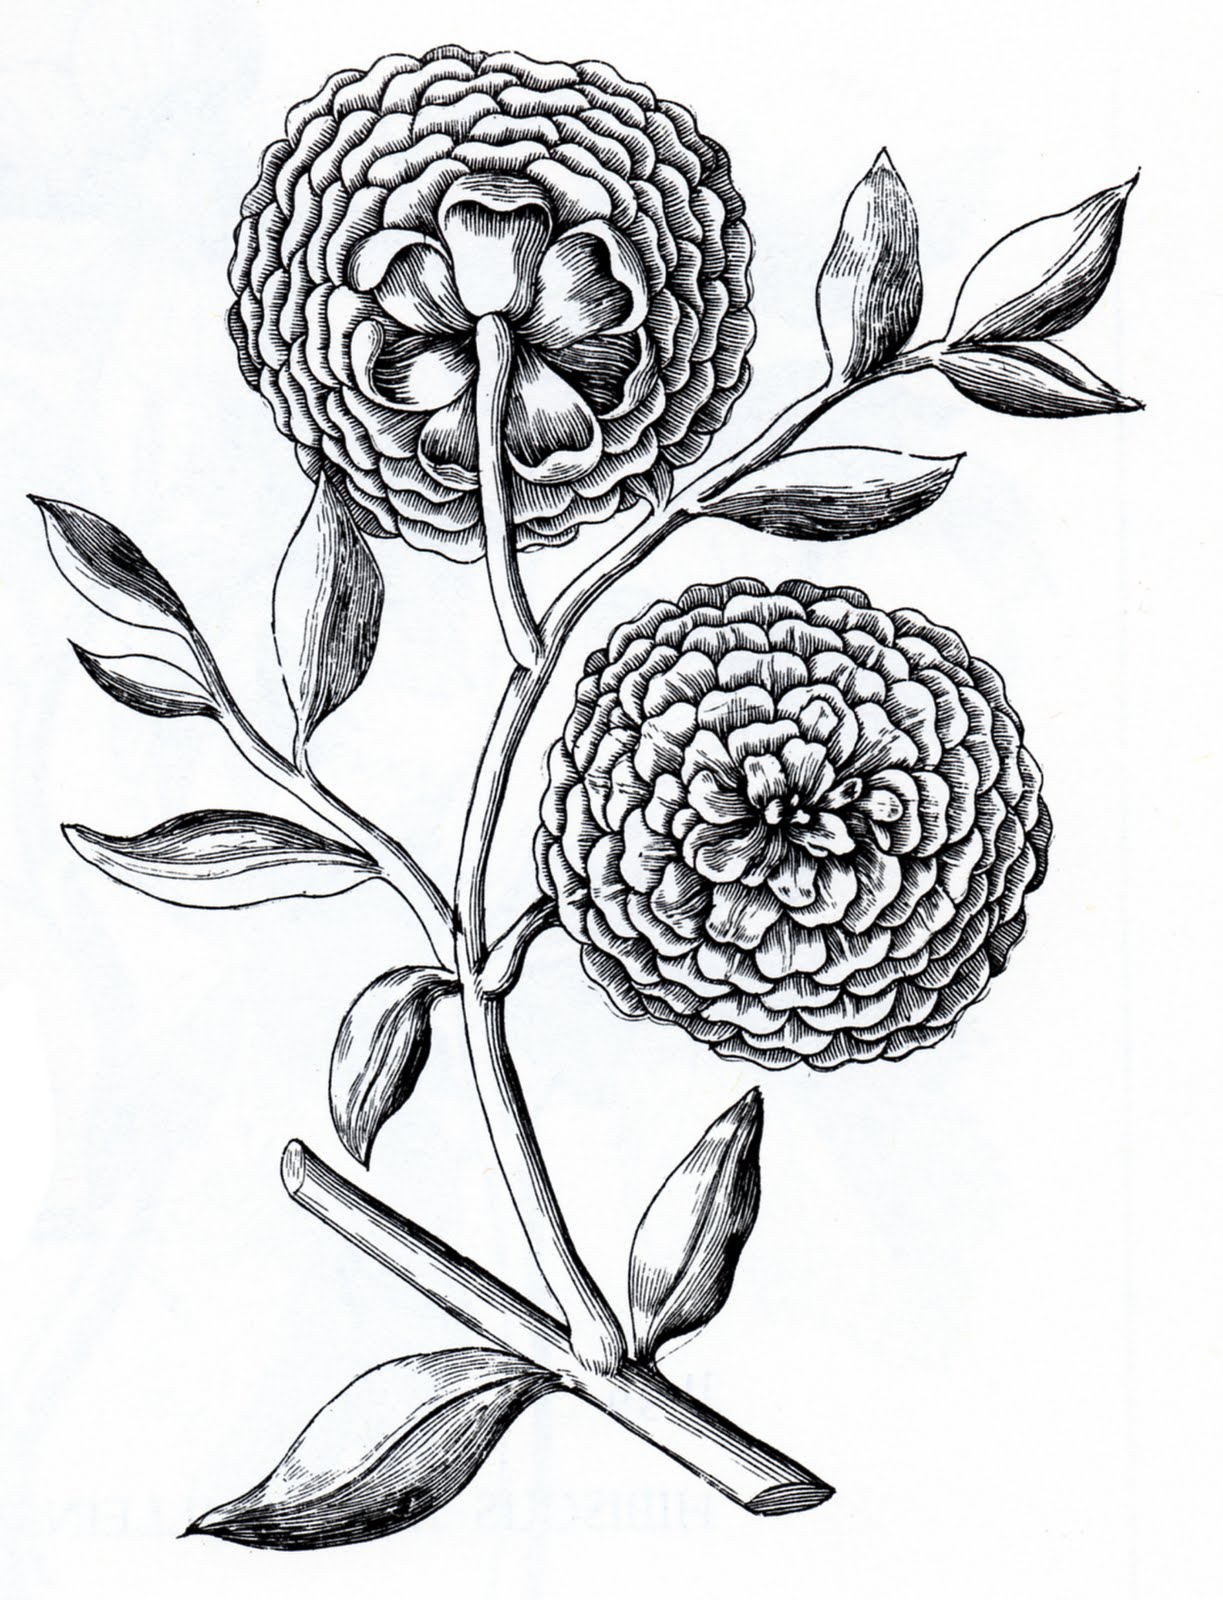 Drawing Of Flowers And A Cross - ClipArt Best